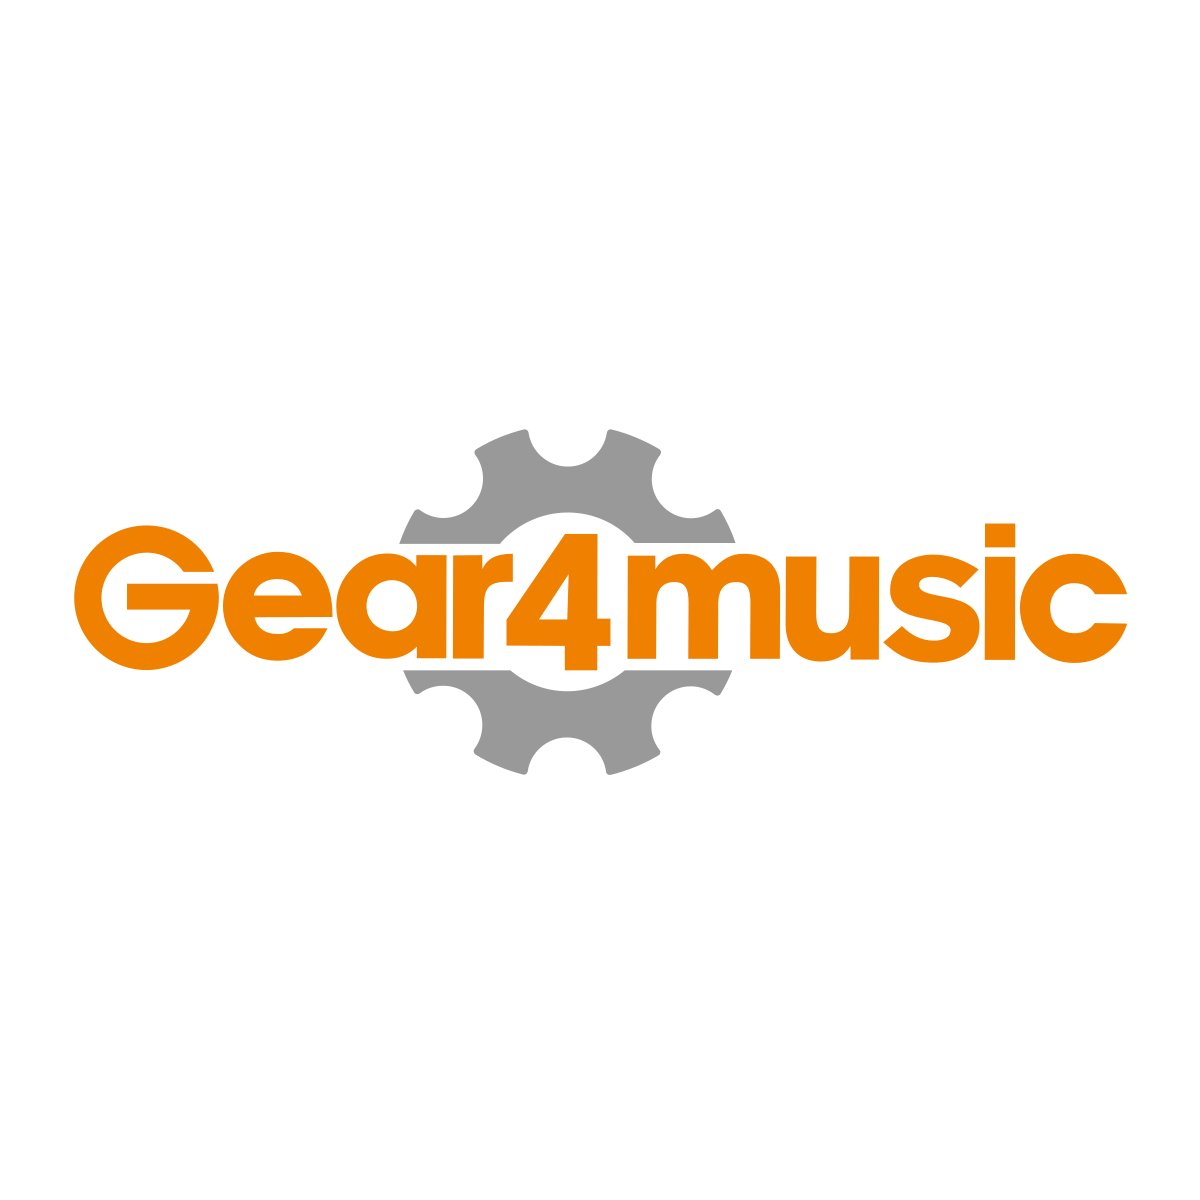 Corno tenore di Coppergate intermedio, di Gear4music